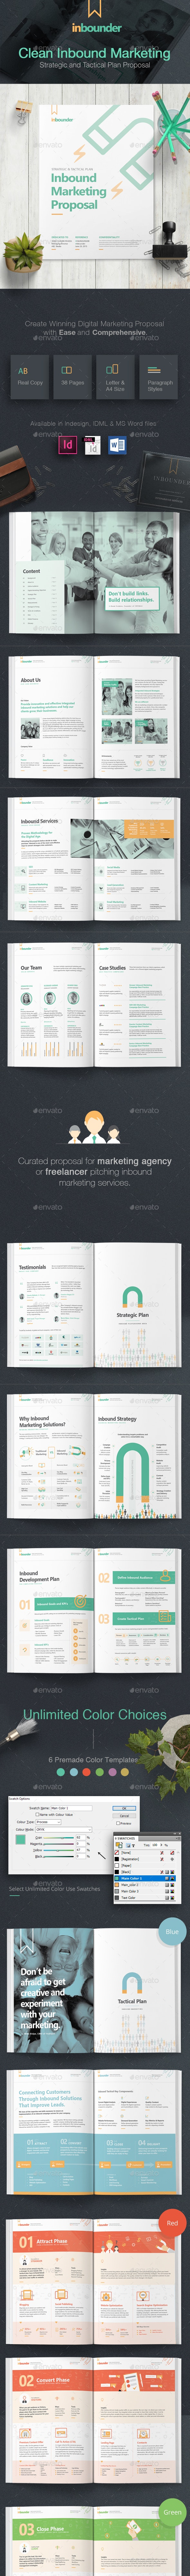 Inbound Marketing Proposal - Proposals & Invoices Stationery